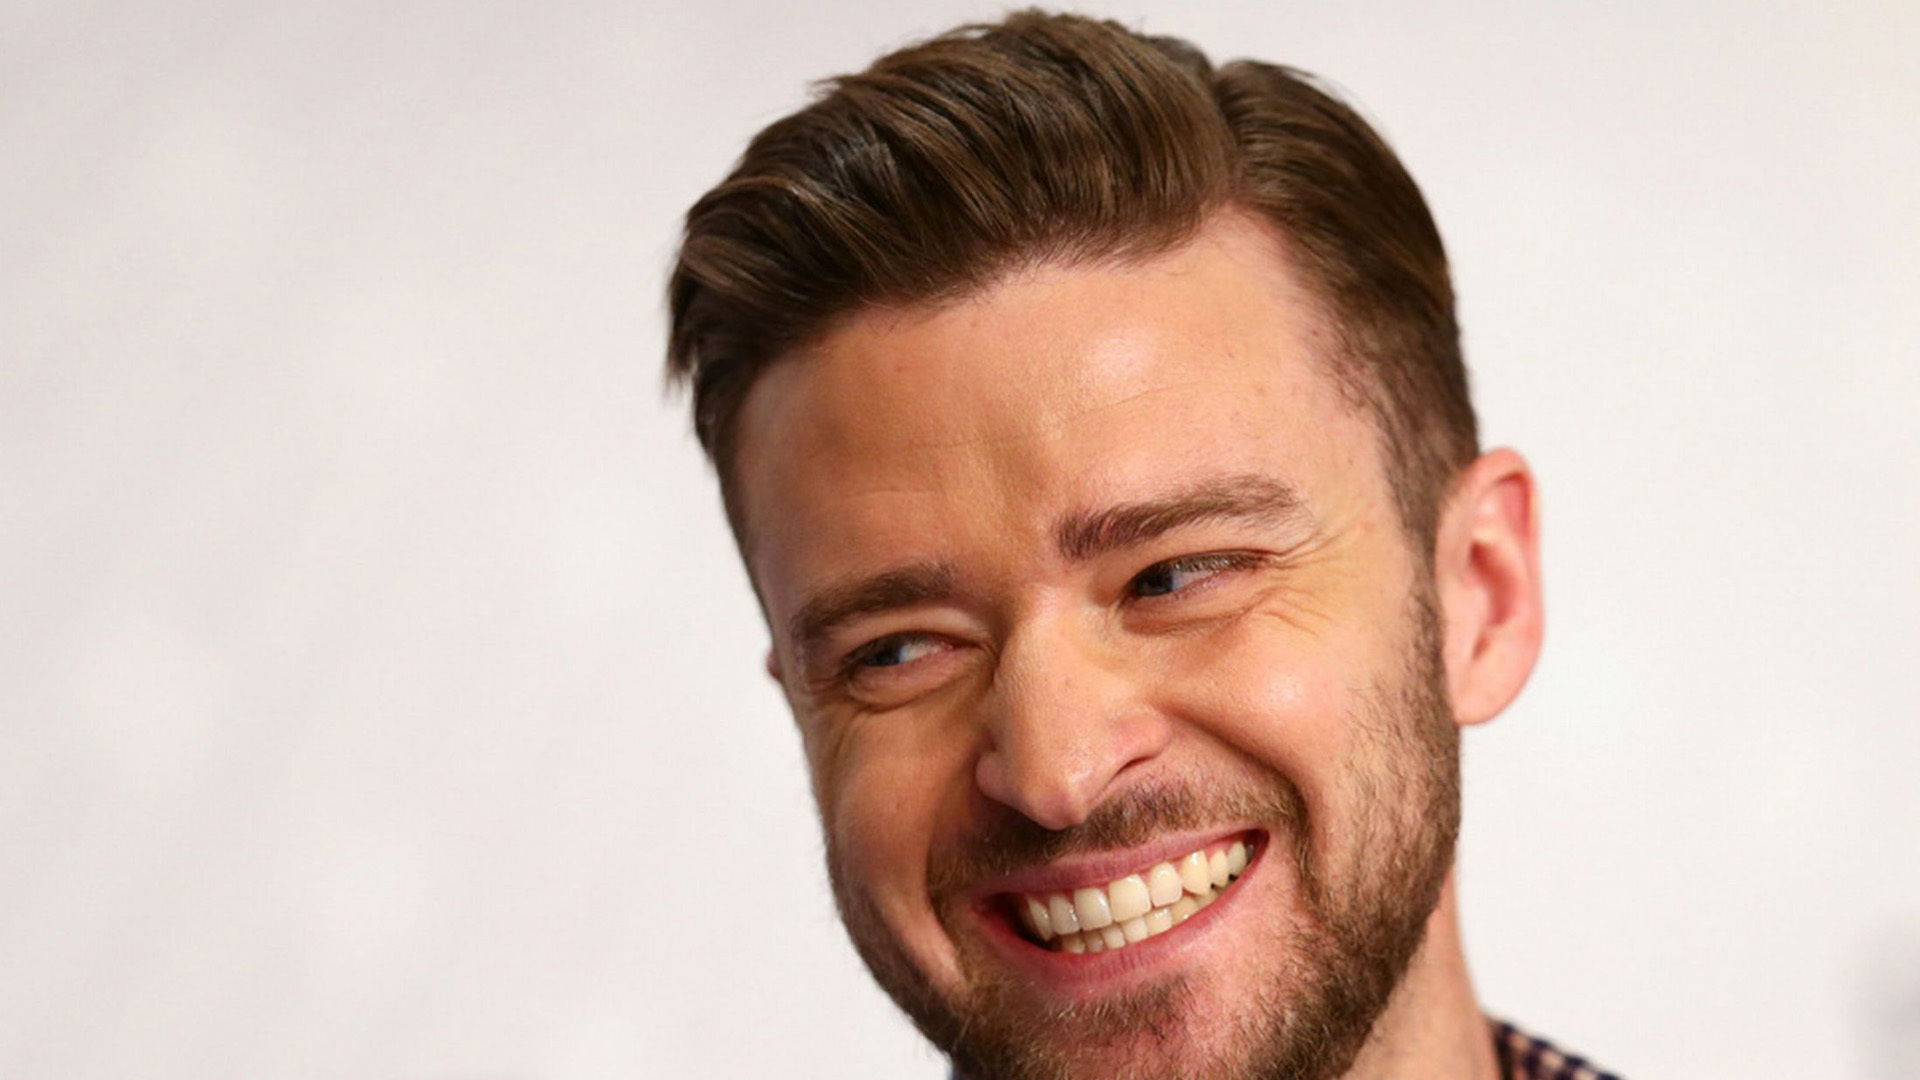 Justin Timberlake Wallpapers Hd